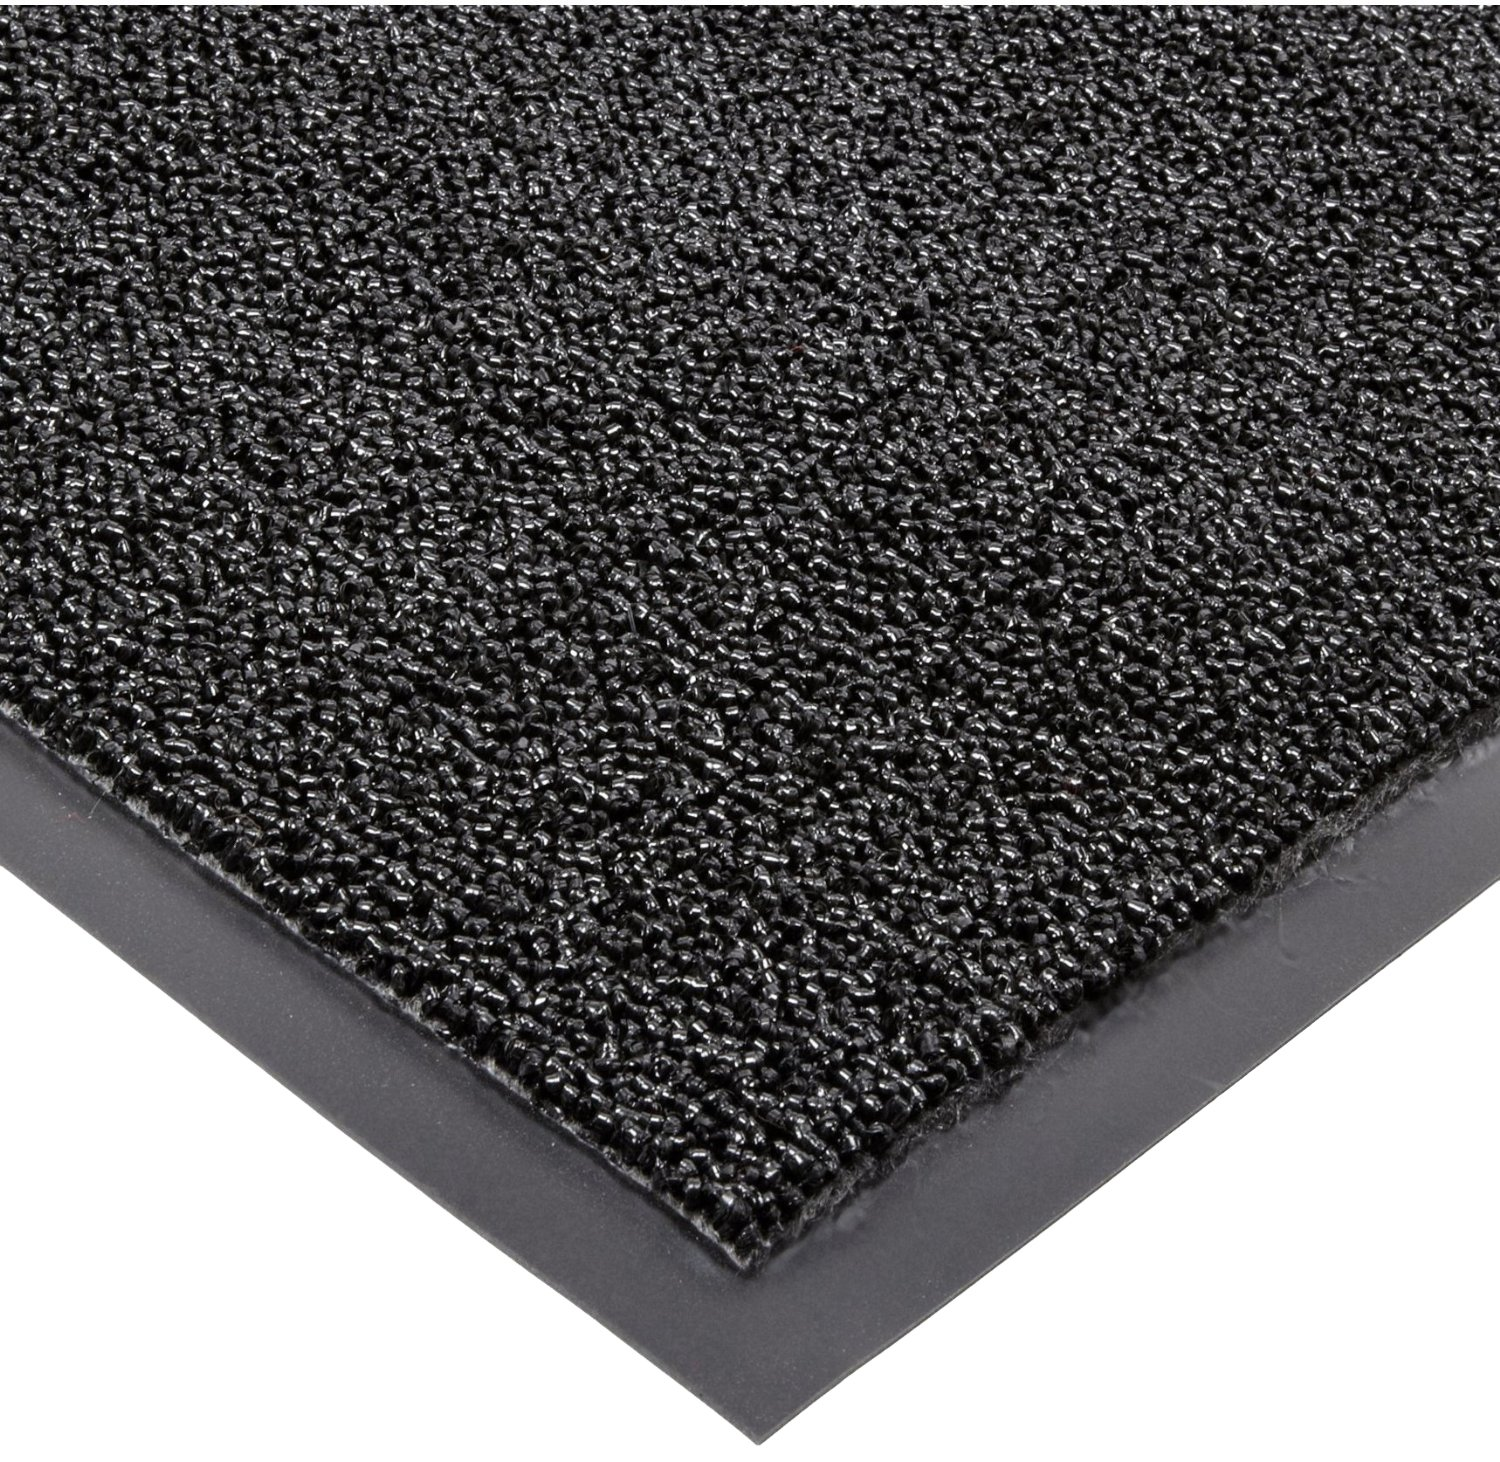 Notrax 146 Encore Entrance Mat, for Inside Foyer Area, 4' Width x 8' Length x 5/16'' Thickness, Black